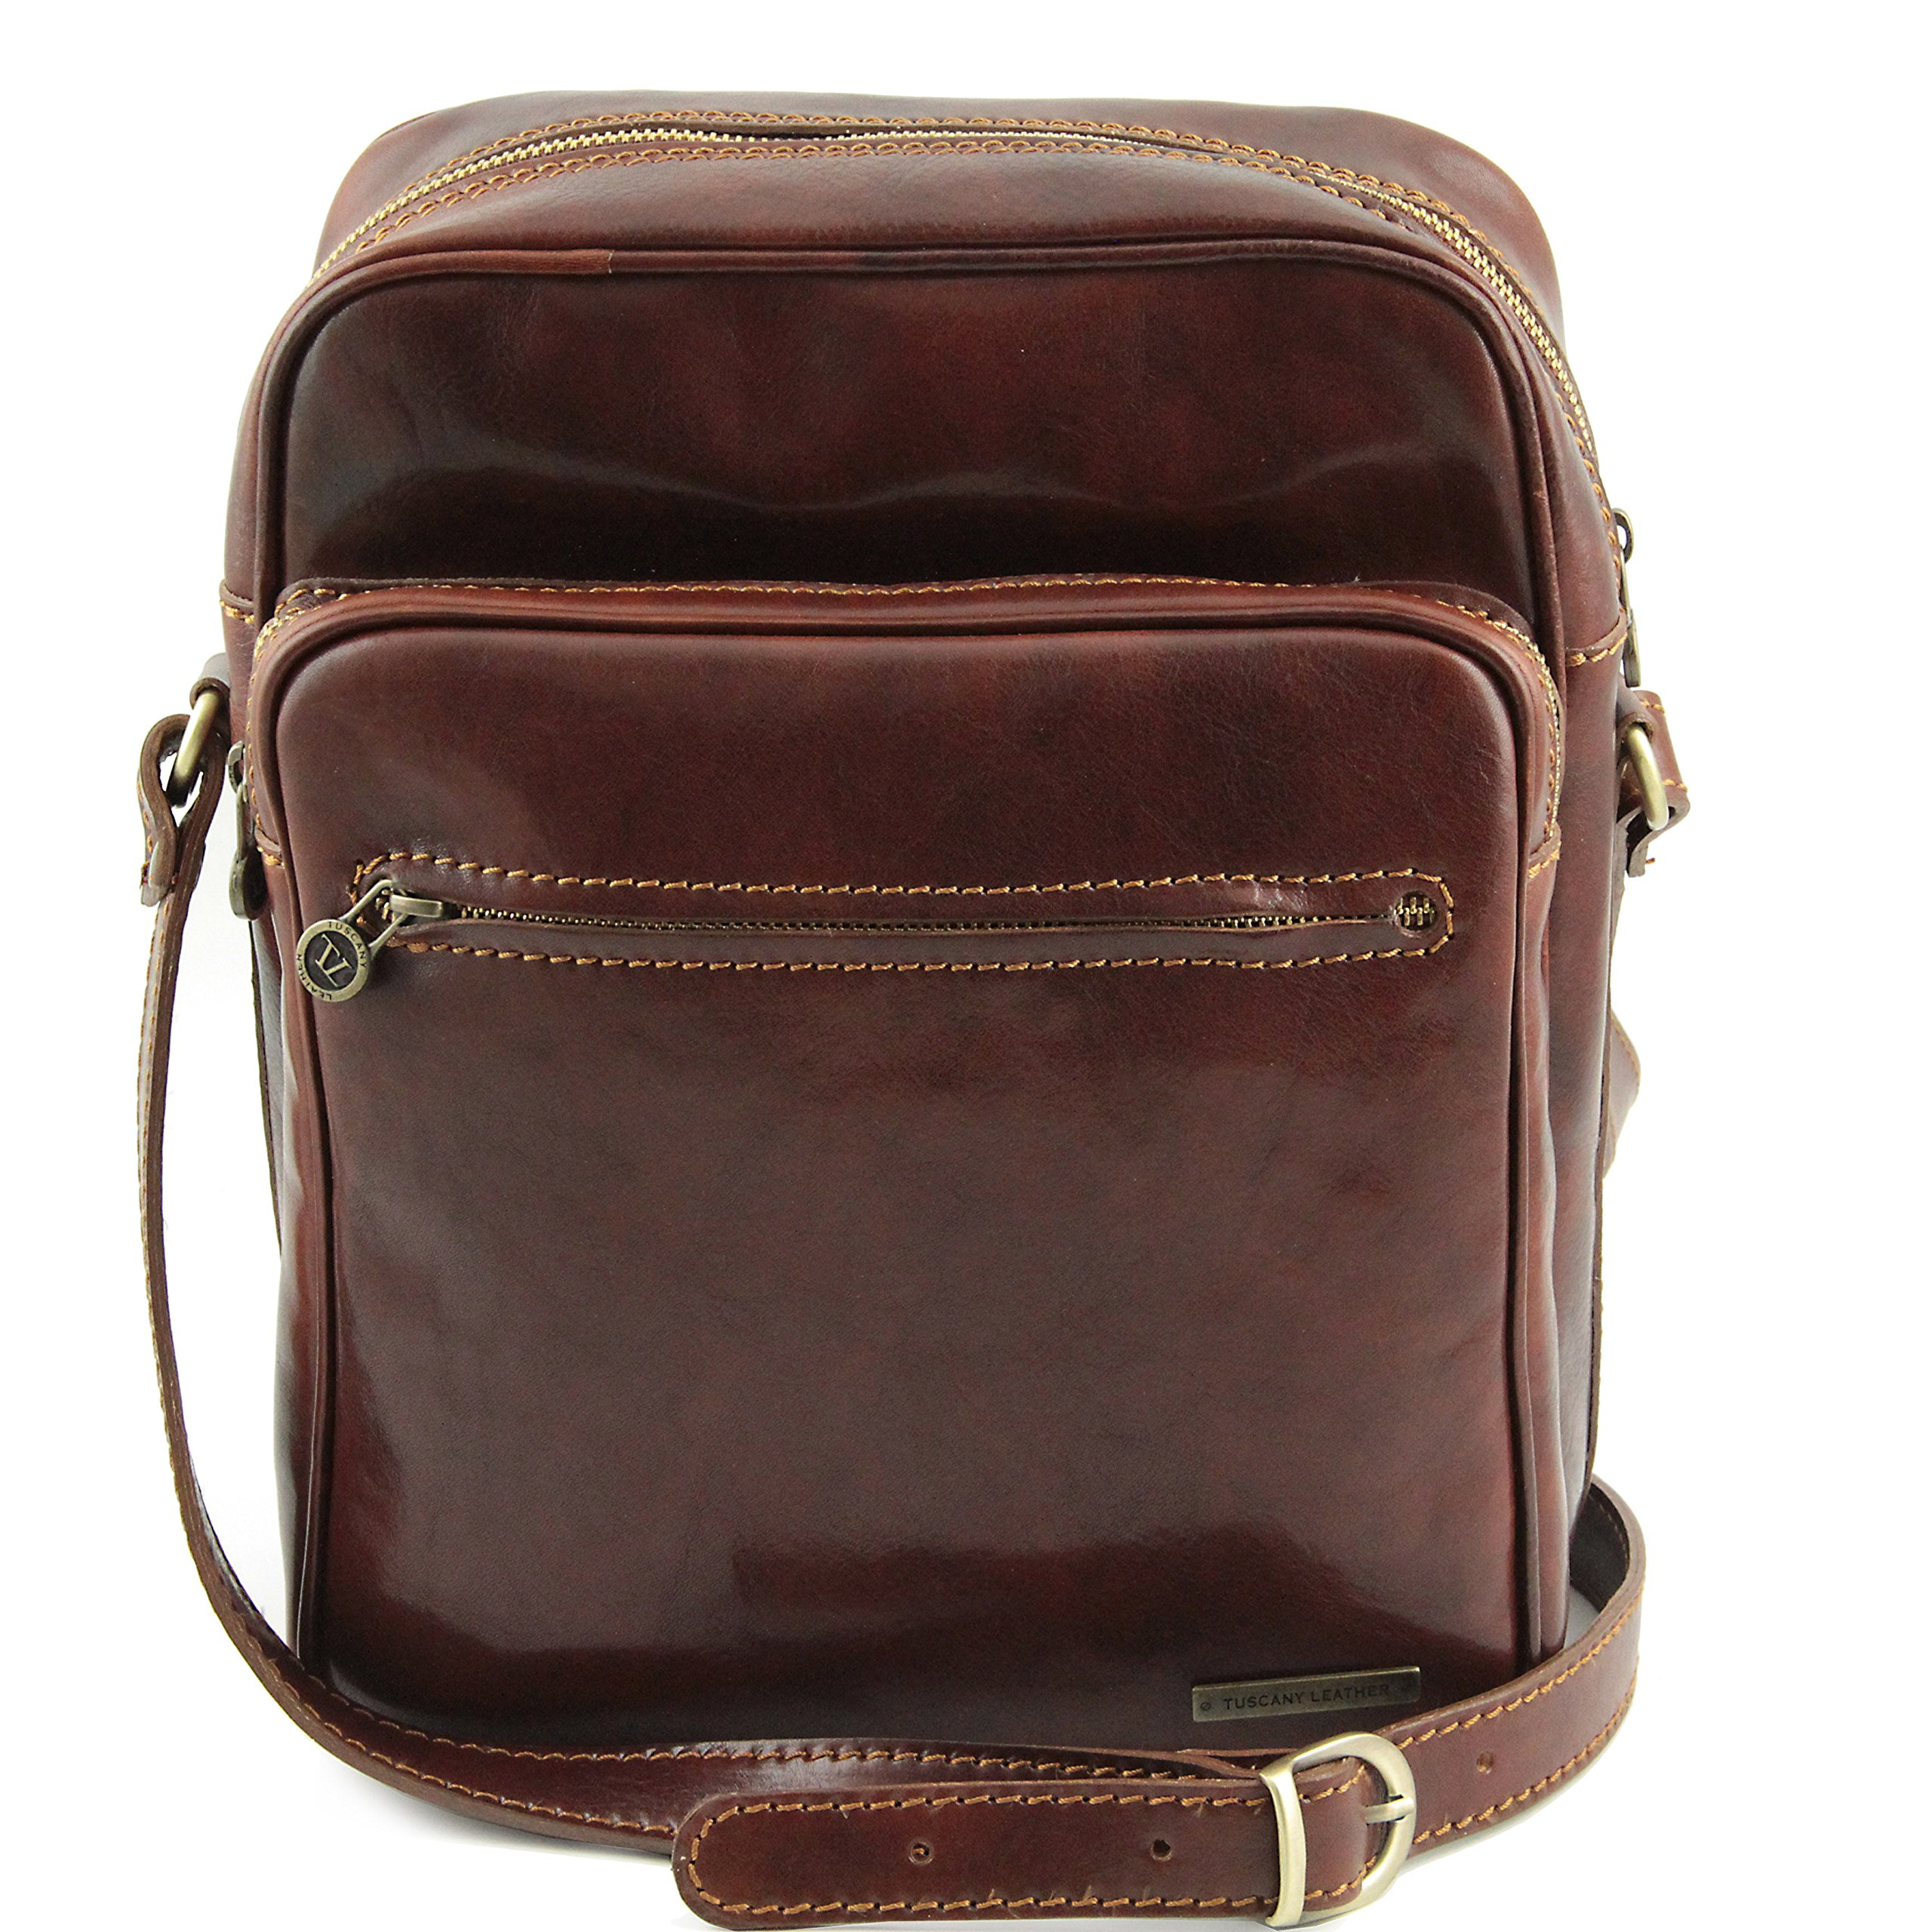 Tuscany Leather Oscar Exclusive Leather Crossbody Bag Brown